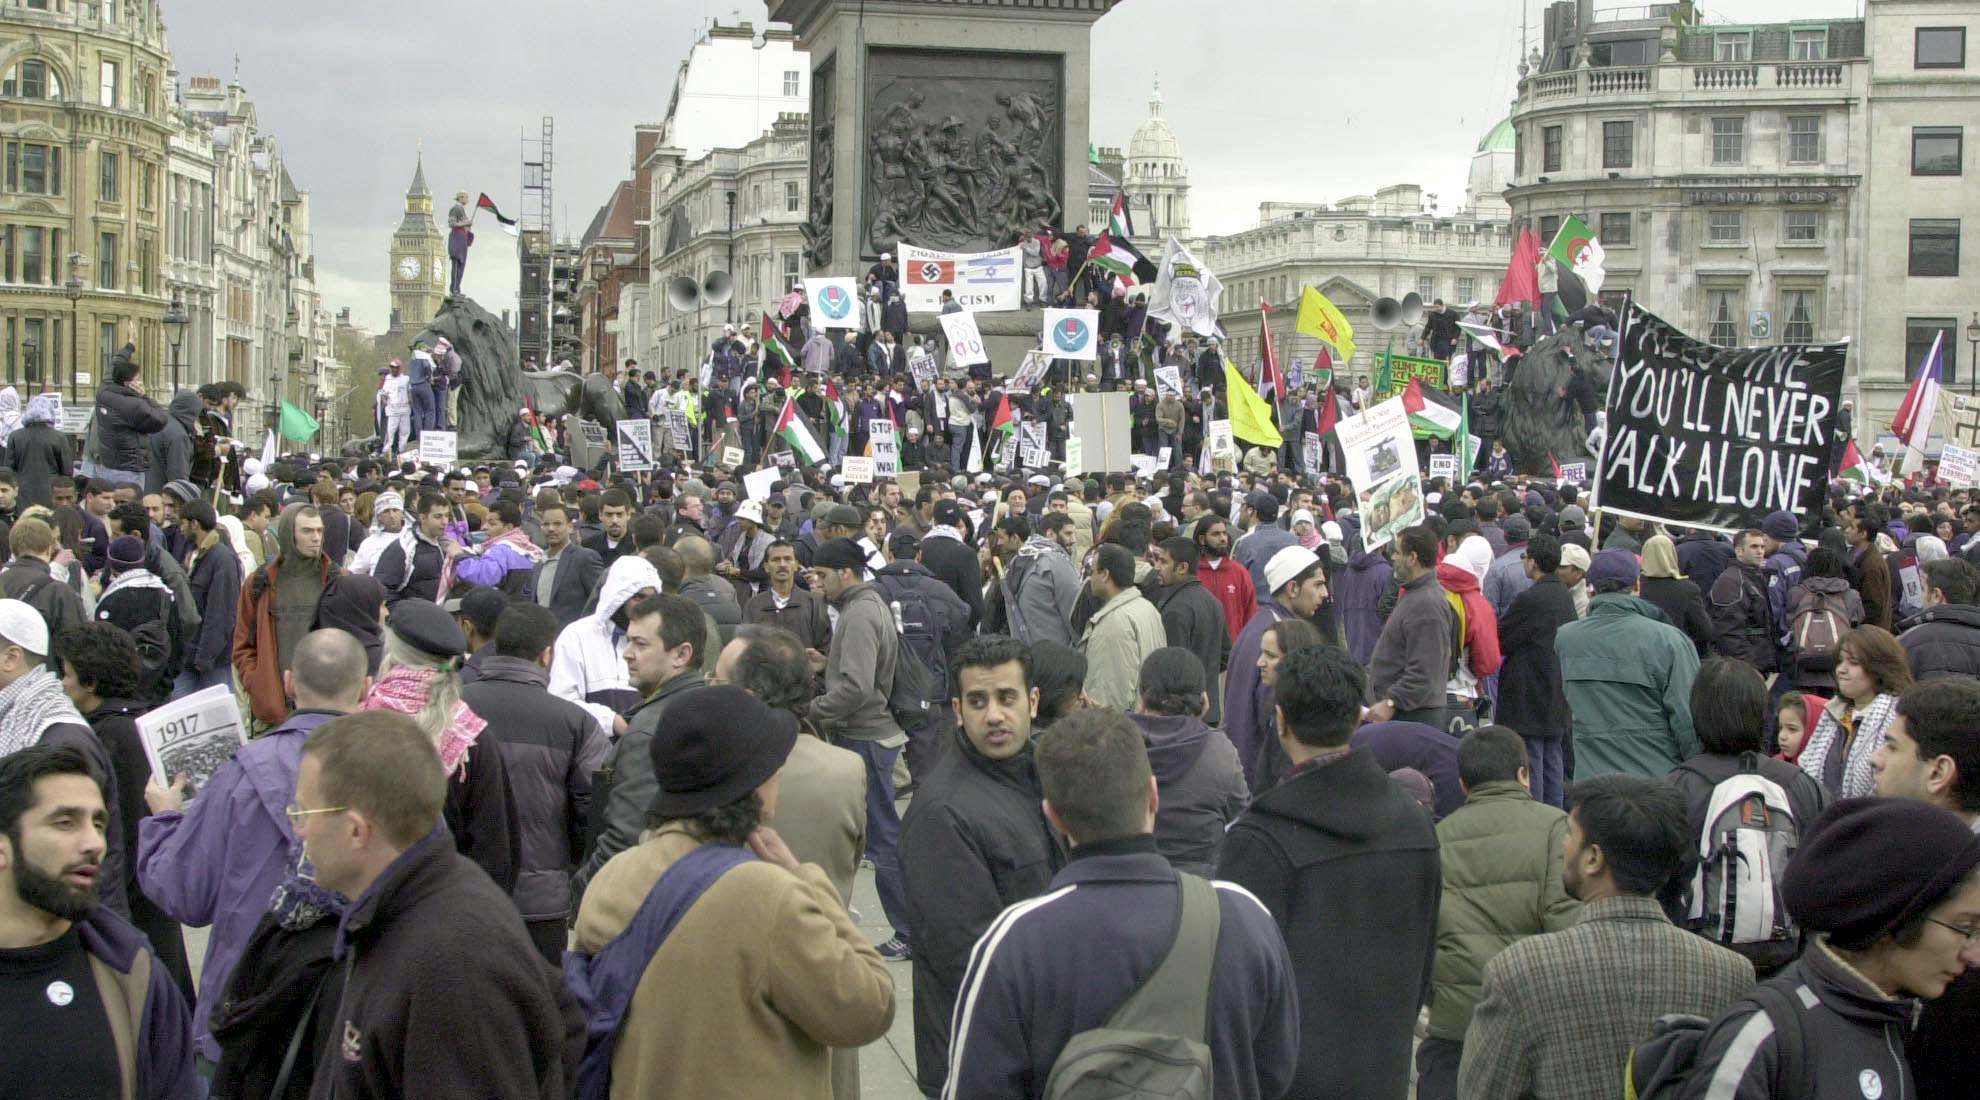 A view of Trafalgar Square, in central London as thousands of British Muslims held a demonstration in the square in protest at the Israeli action against Palestinians in the Middle East. 13/4/2002